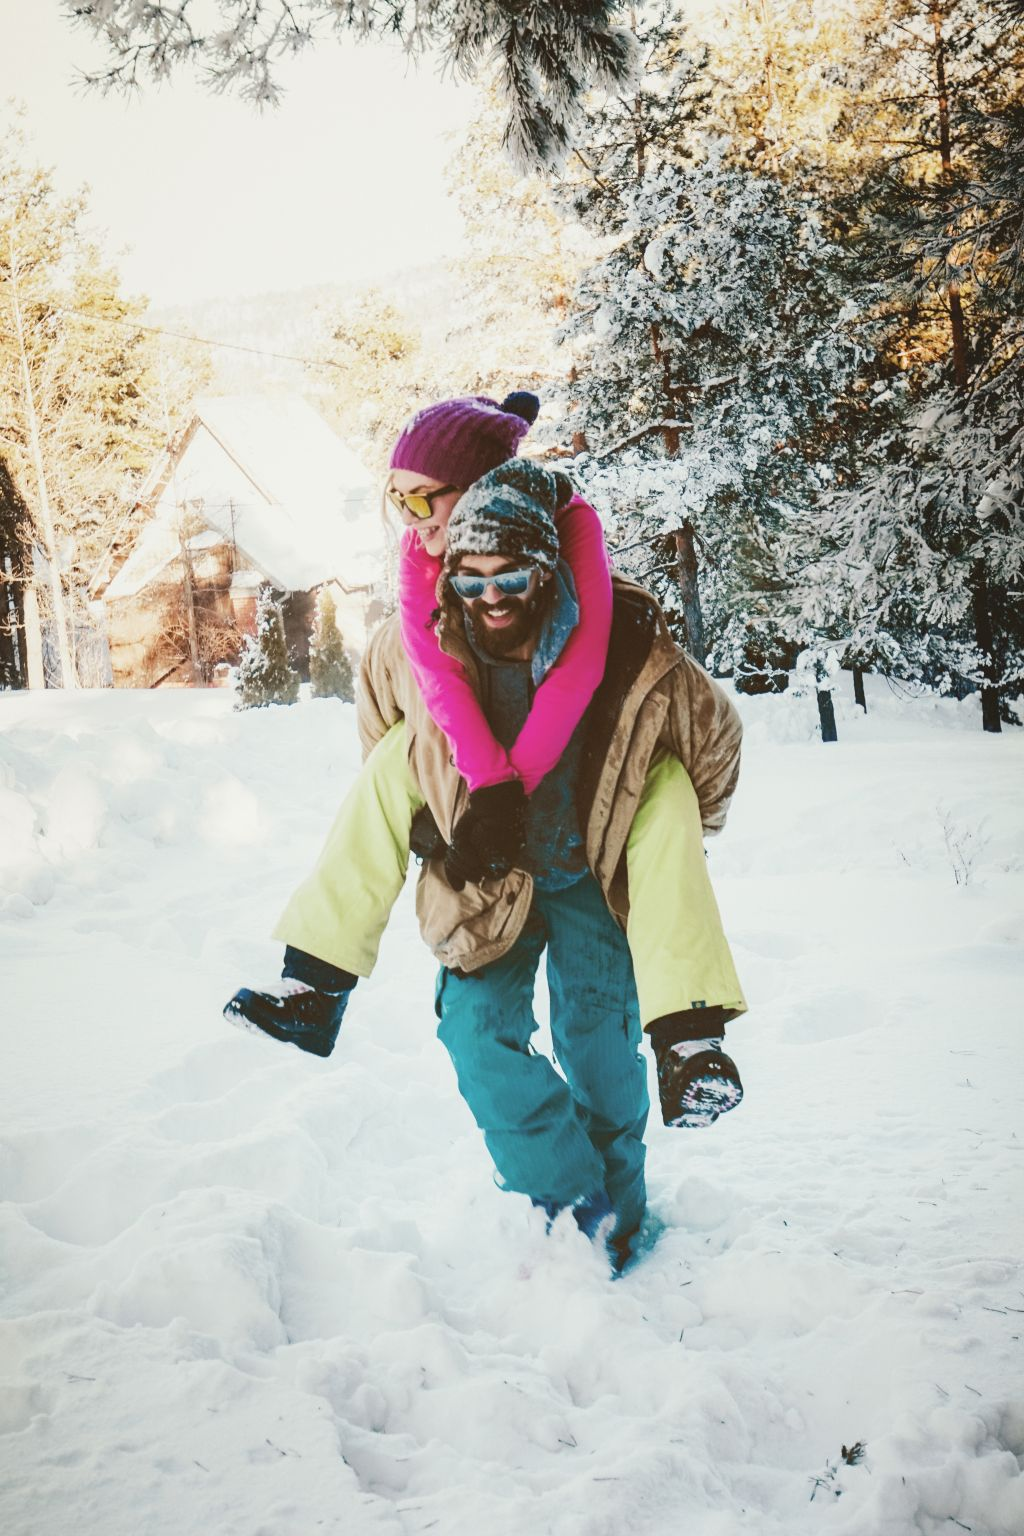 Man walking through deep snow with woman on his back